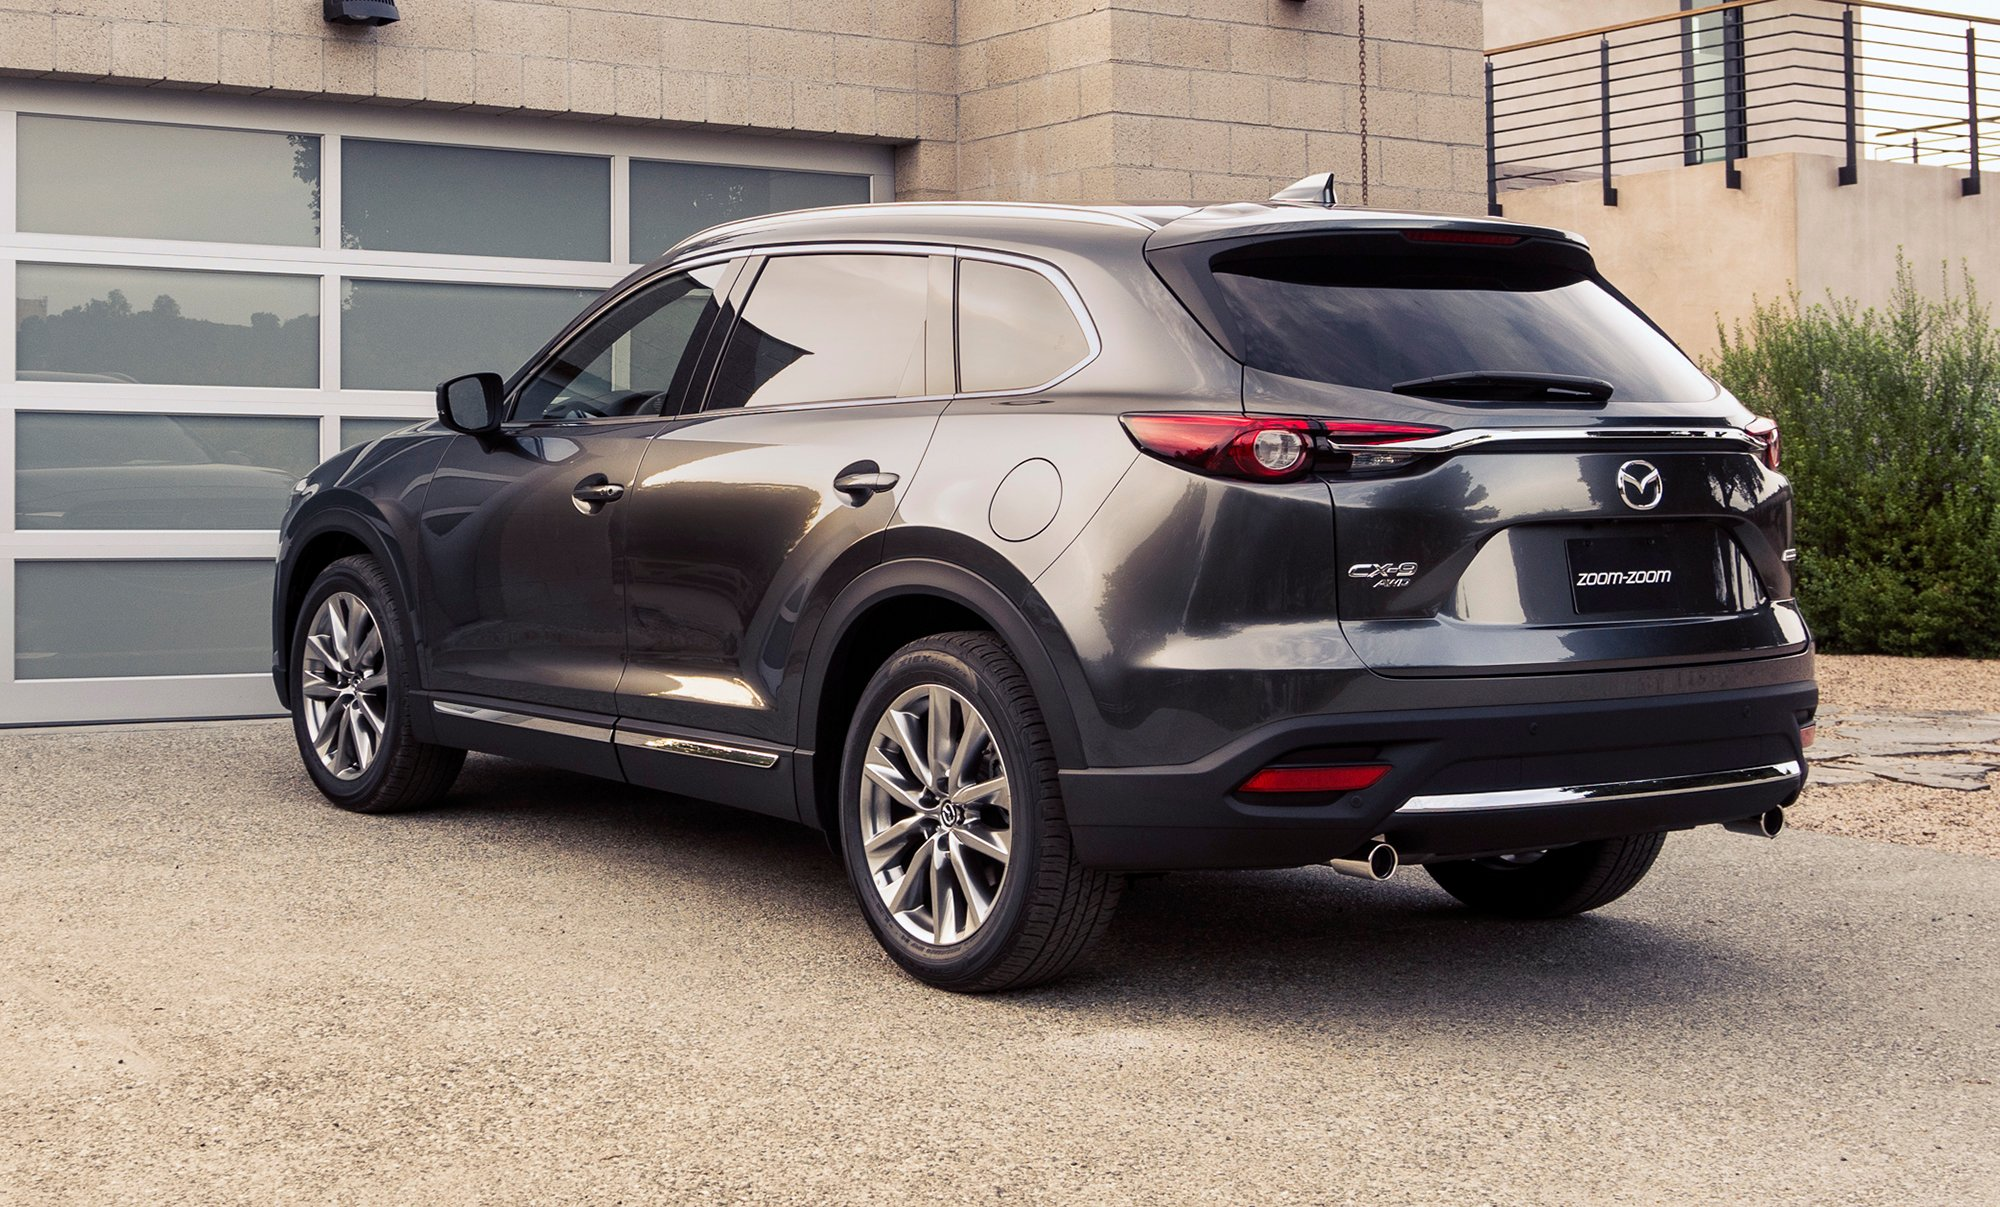 2016 mazda cx 9 revealed with new 2 5 turbo engine photos 1 of 36. Black Bedroom Furniture Sets. Home Design Ideas